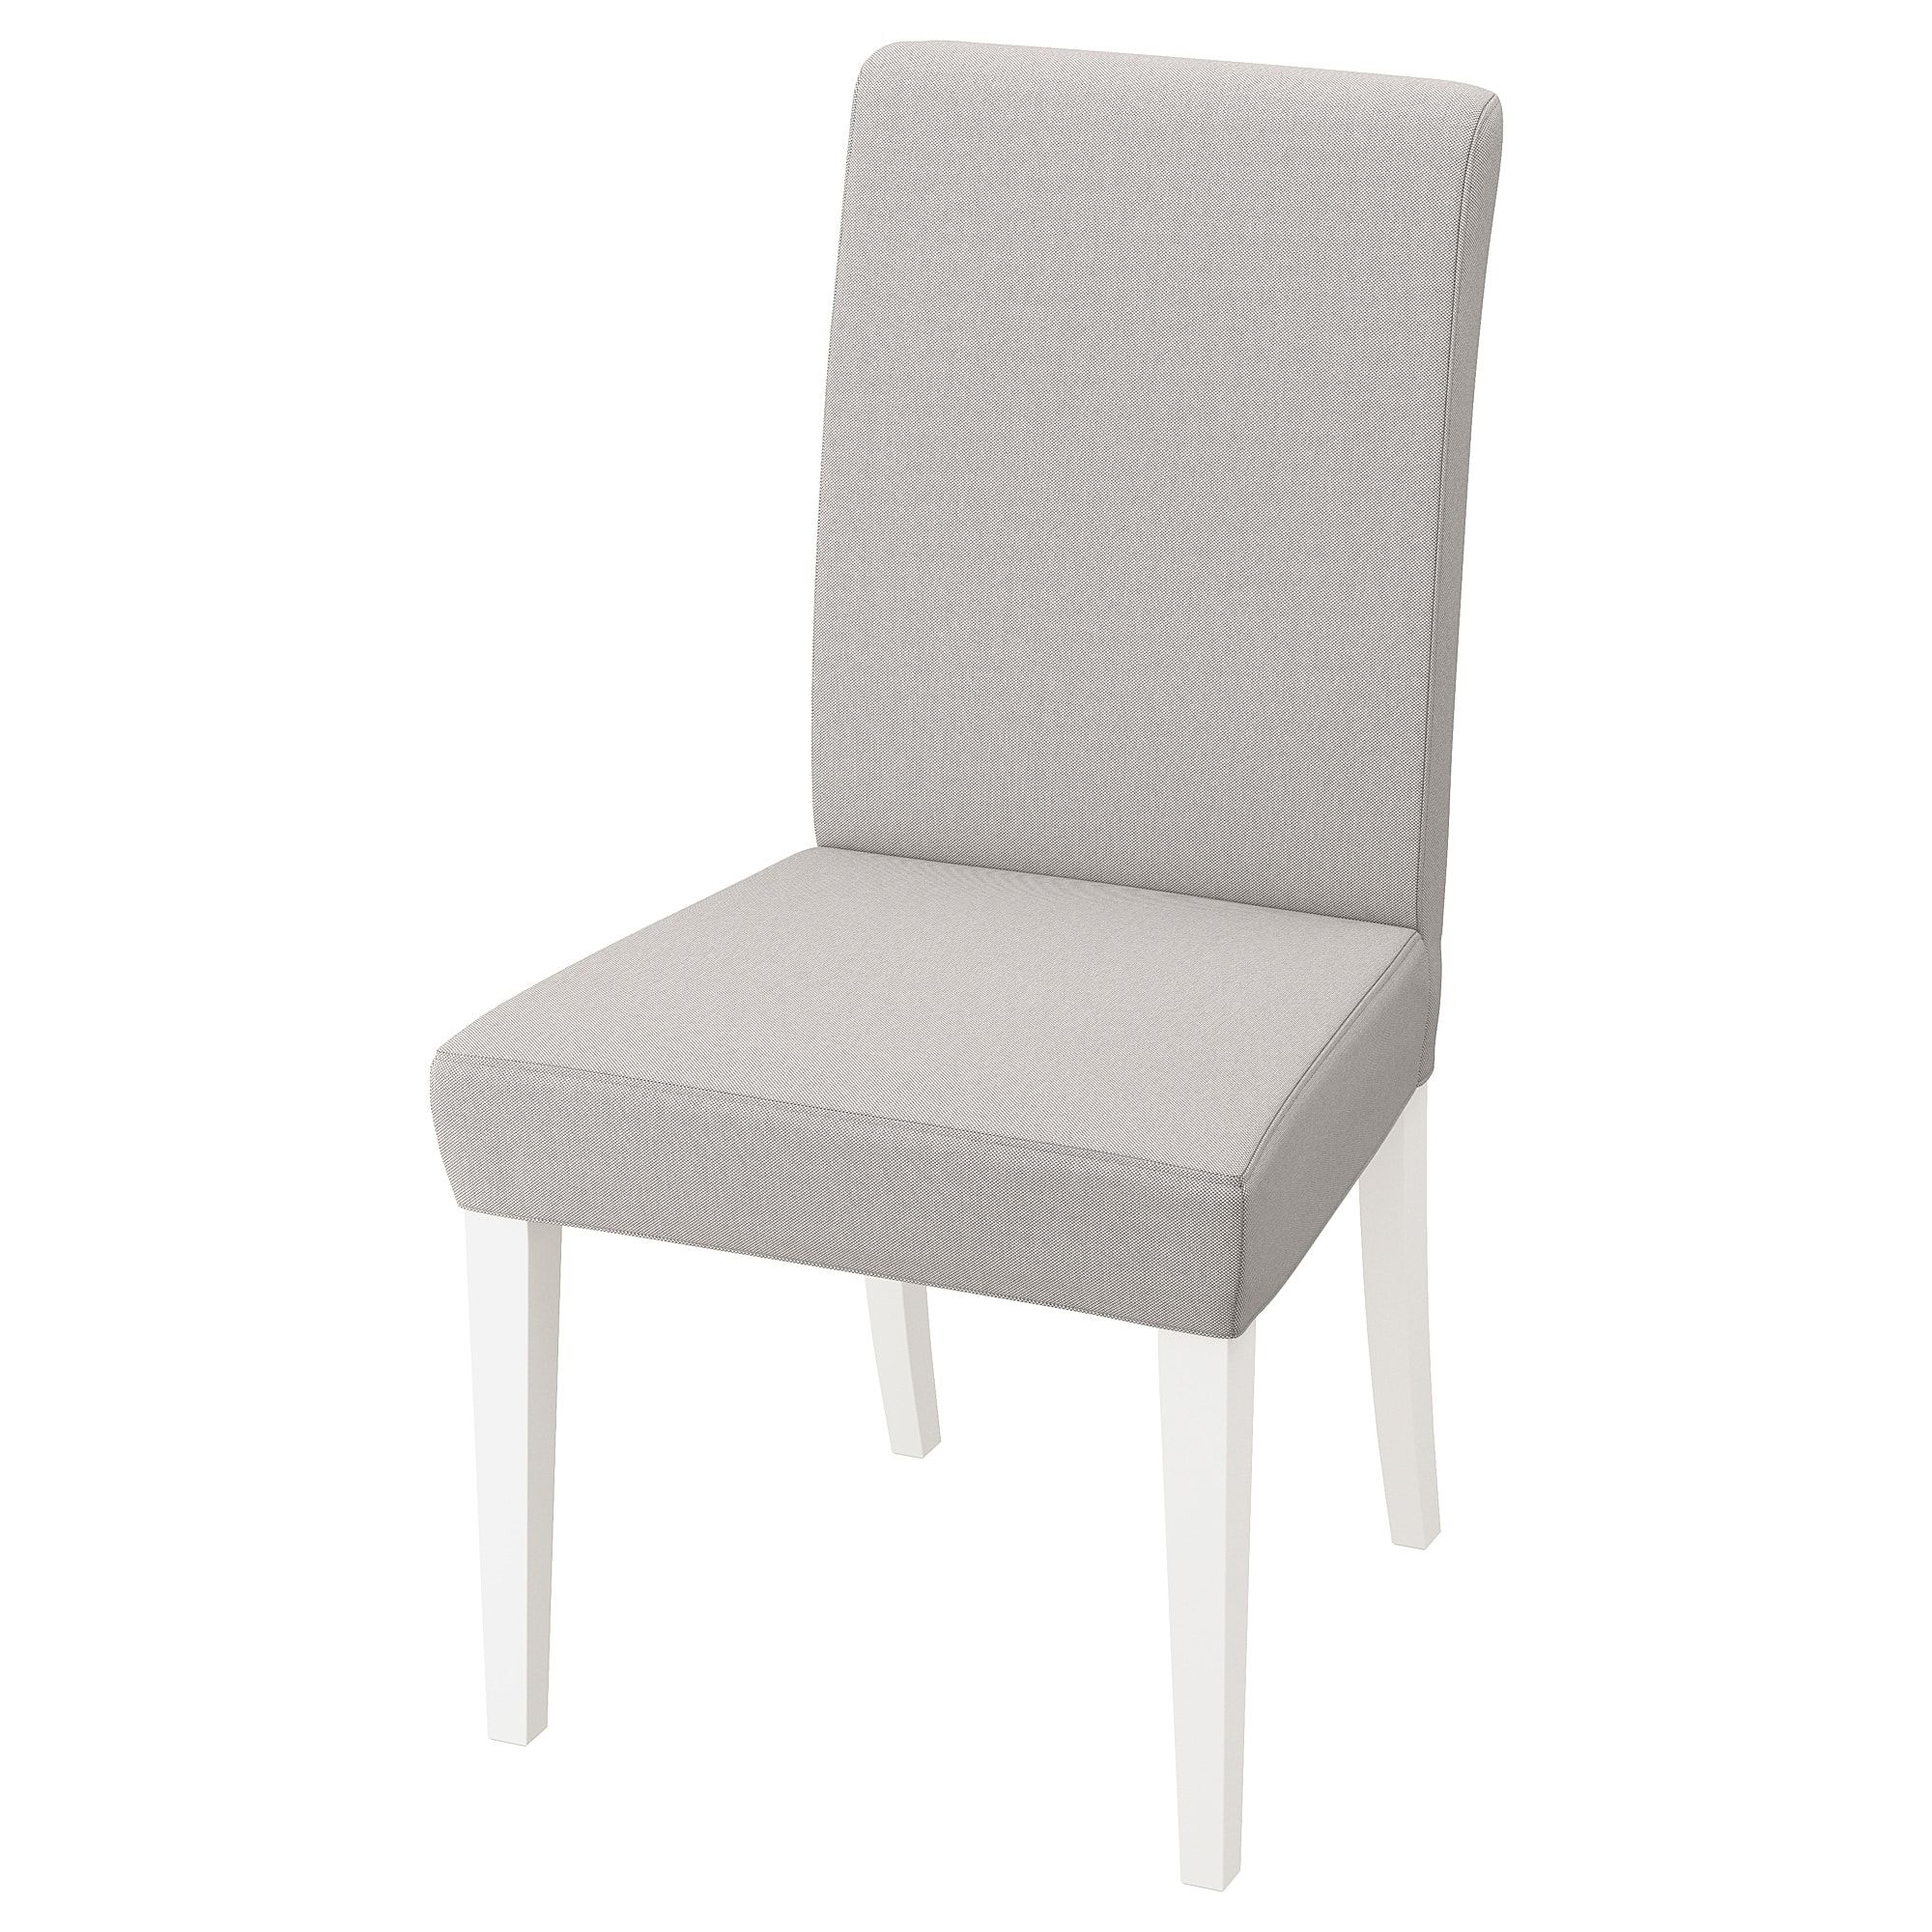 Ikea Us Furniture And Home Furnishings Chair Upholstered Chairs Ikea